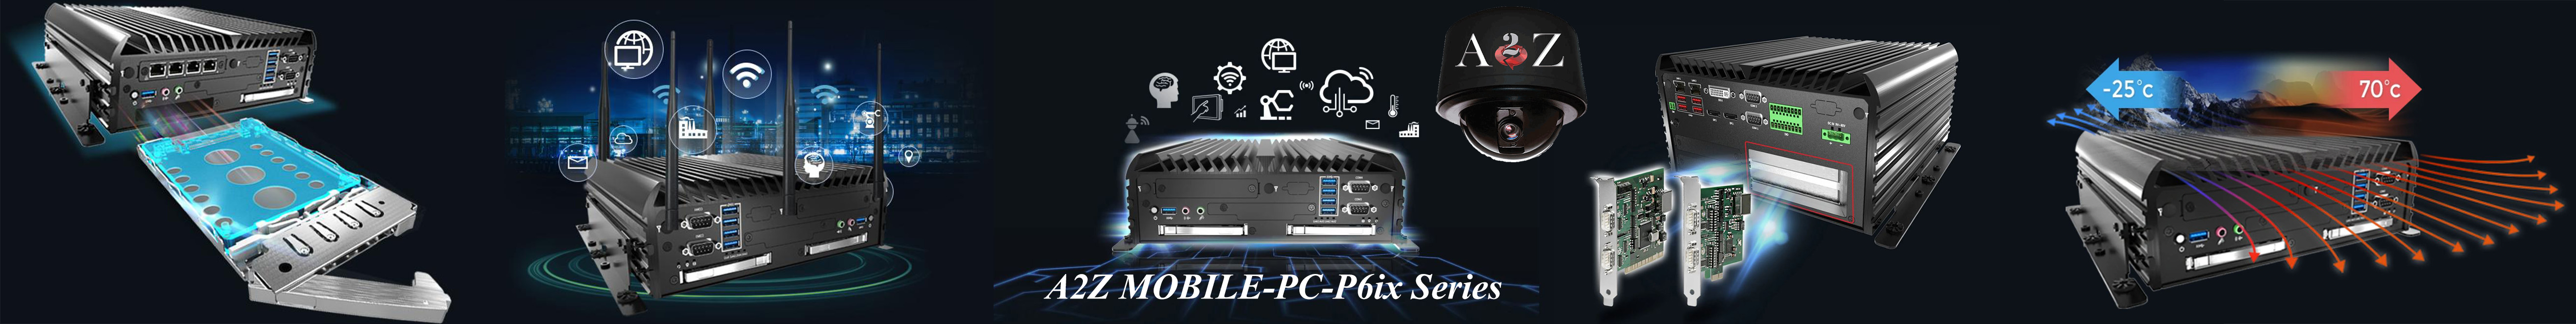 a2z-mobile-pc-p6ix-rugged-pc-nvr-vms-dvr-cms-pro-av-systems-promo-pic.jpg